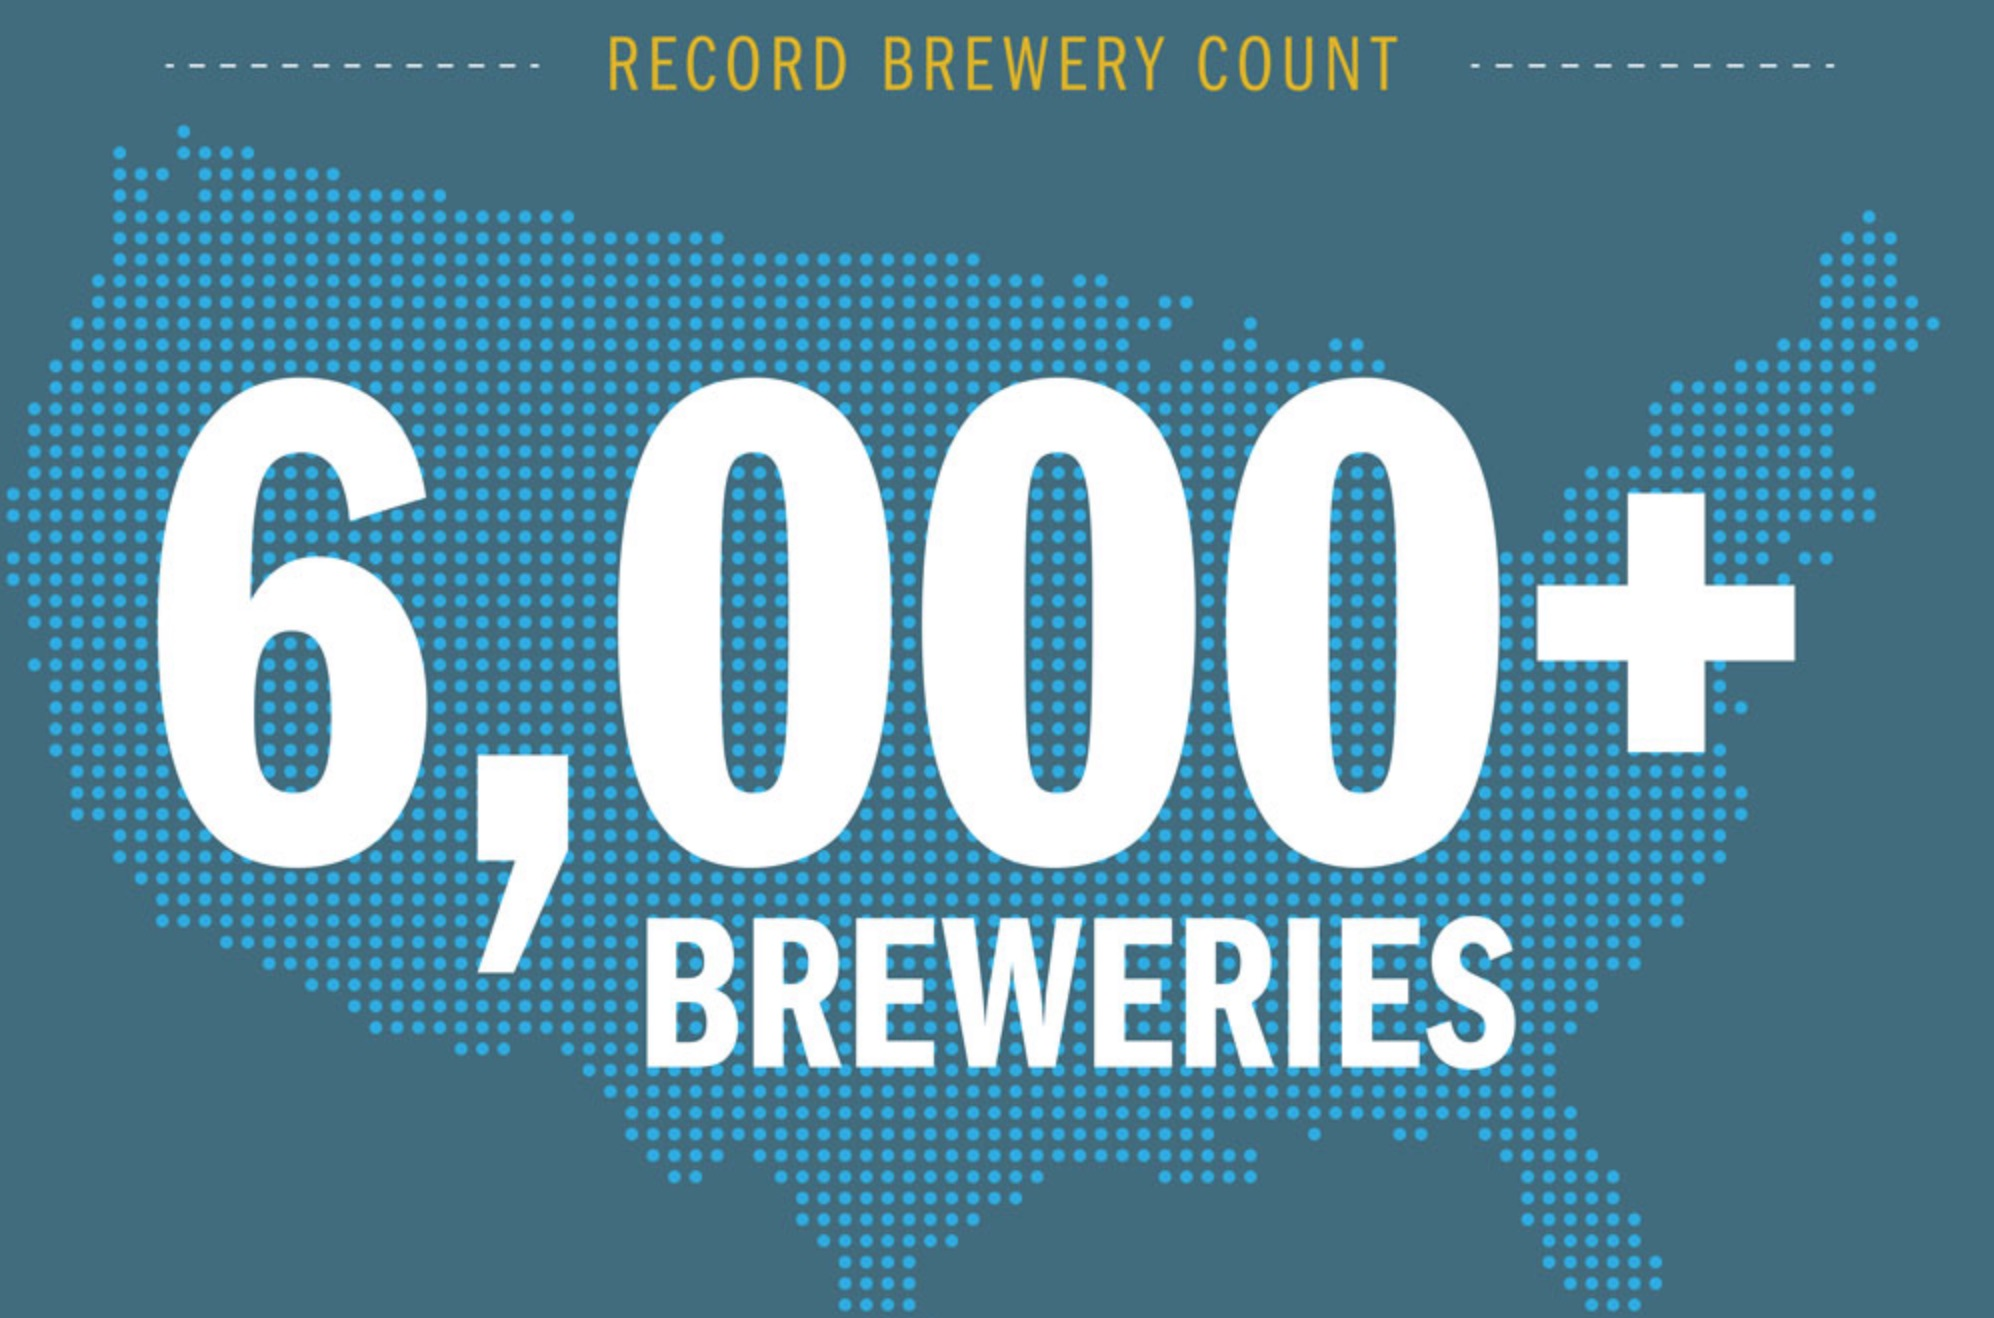 Brewers Association Announces Continued Growth For Craft Beer In